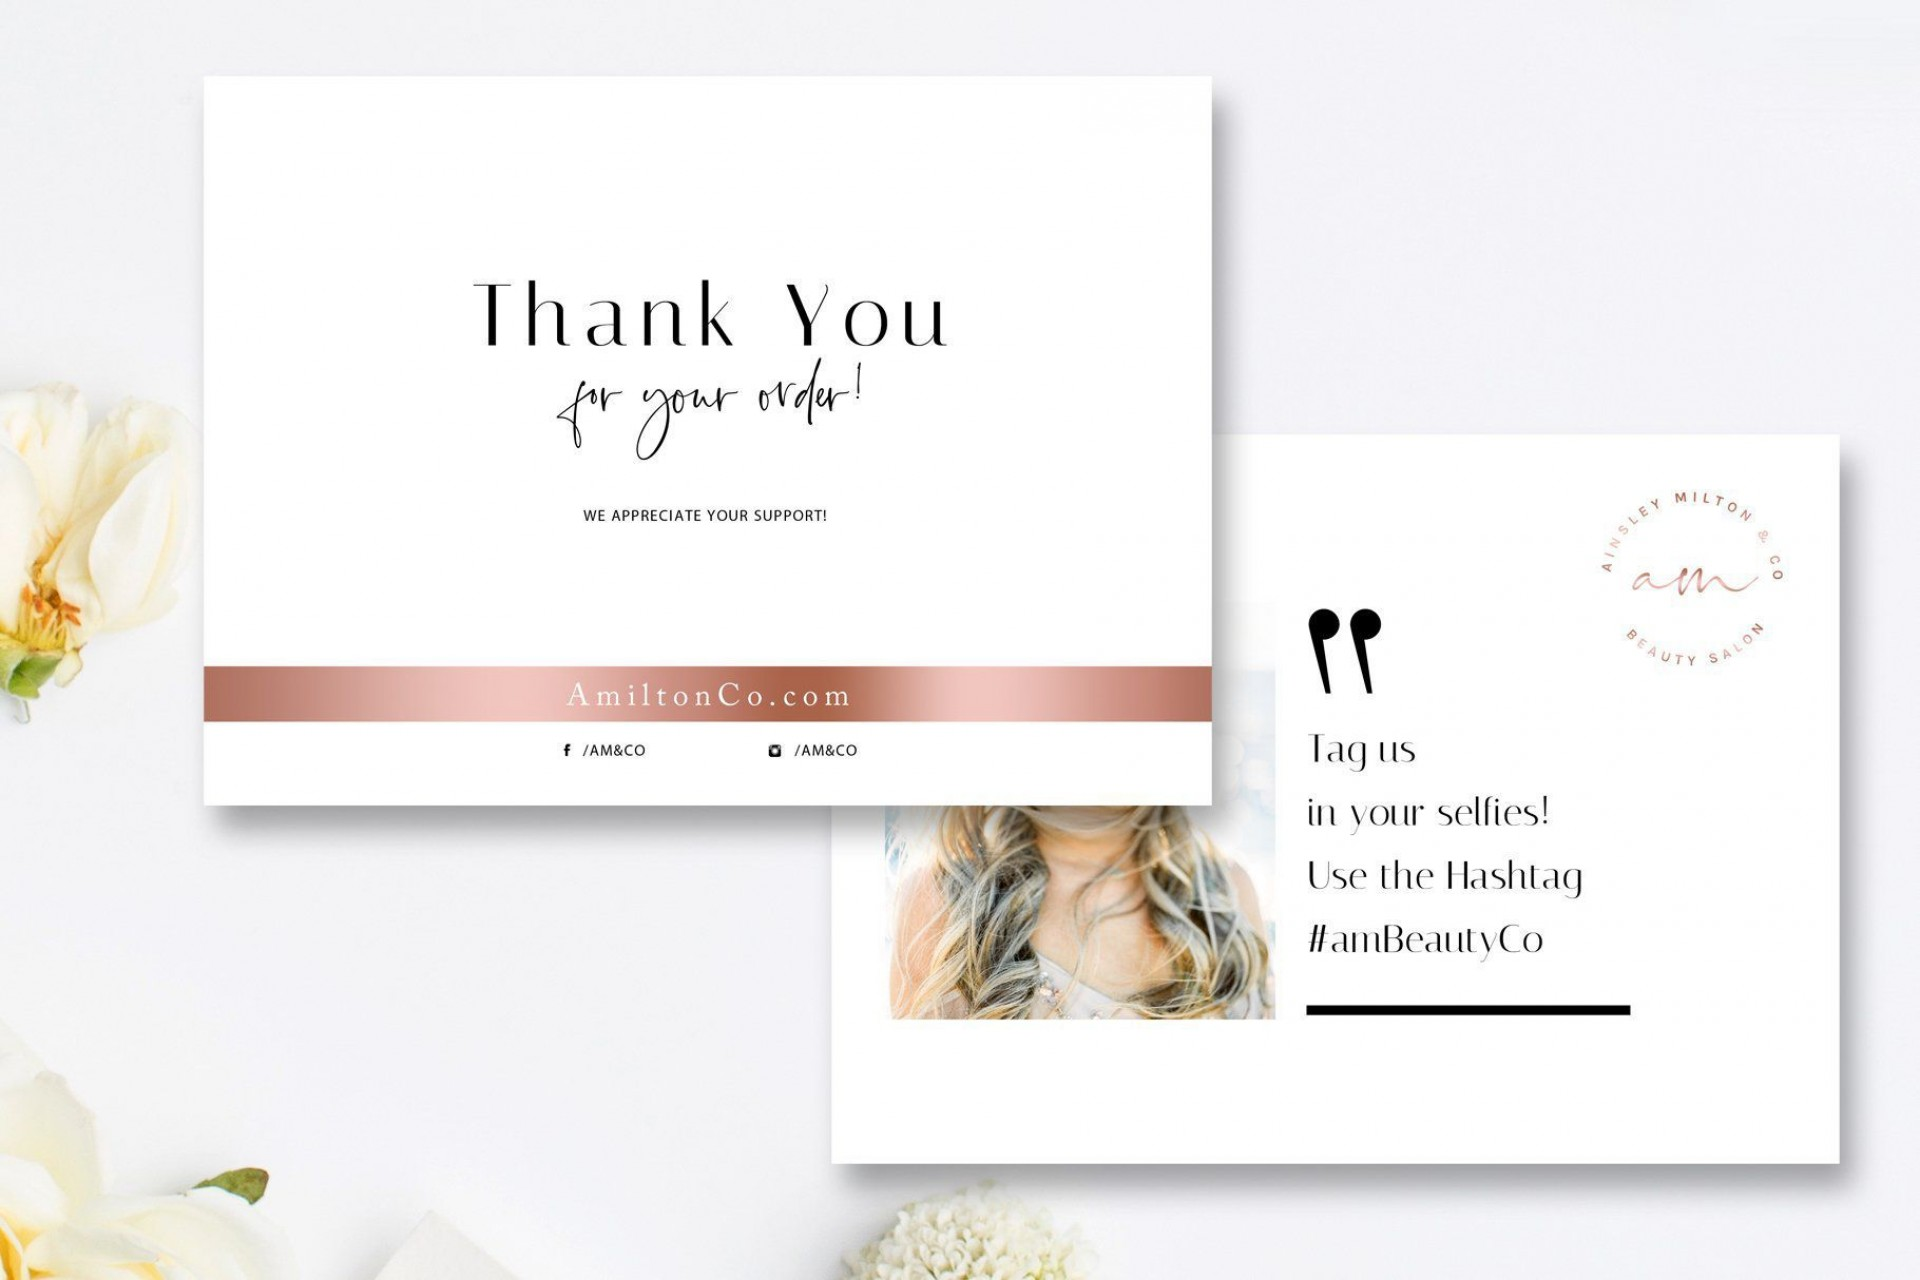 002 Frightening Wedding Thank You Card Template Psd Design  Free1920